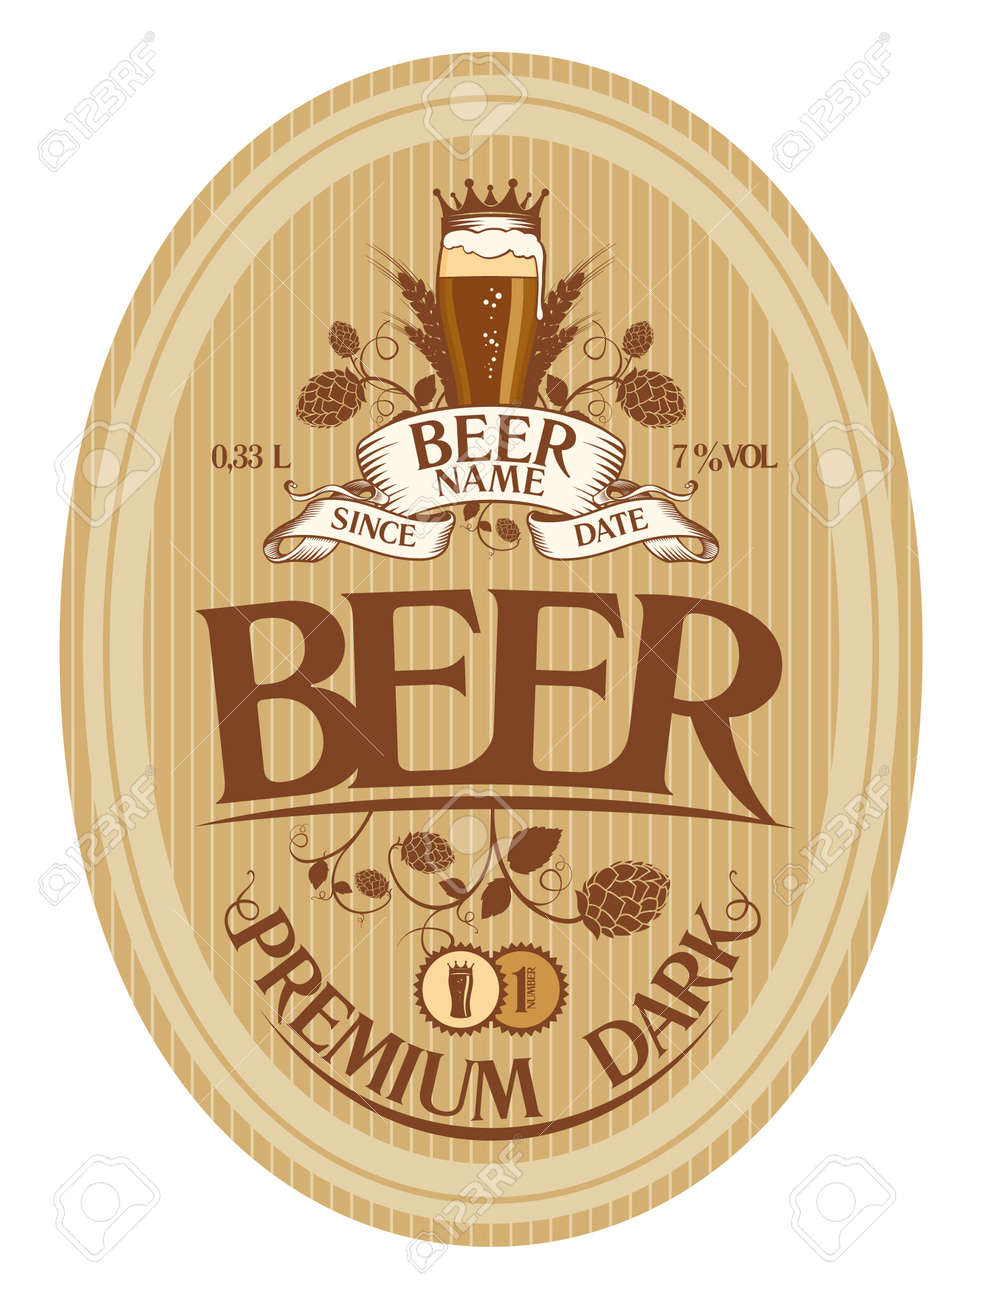 beer label design template royalty free cliparts vectors and stock